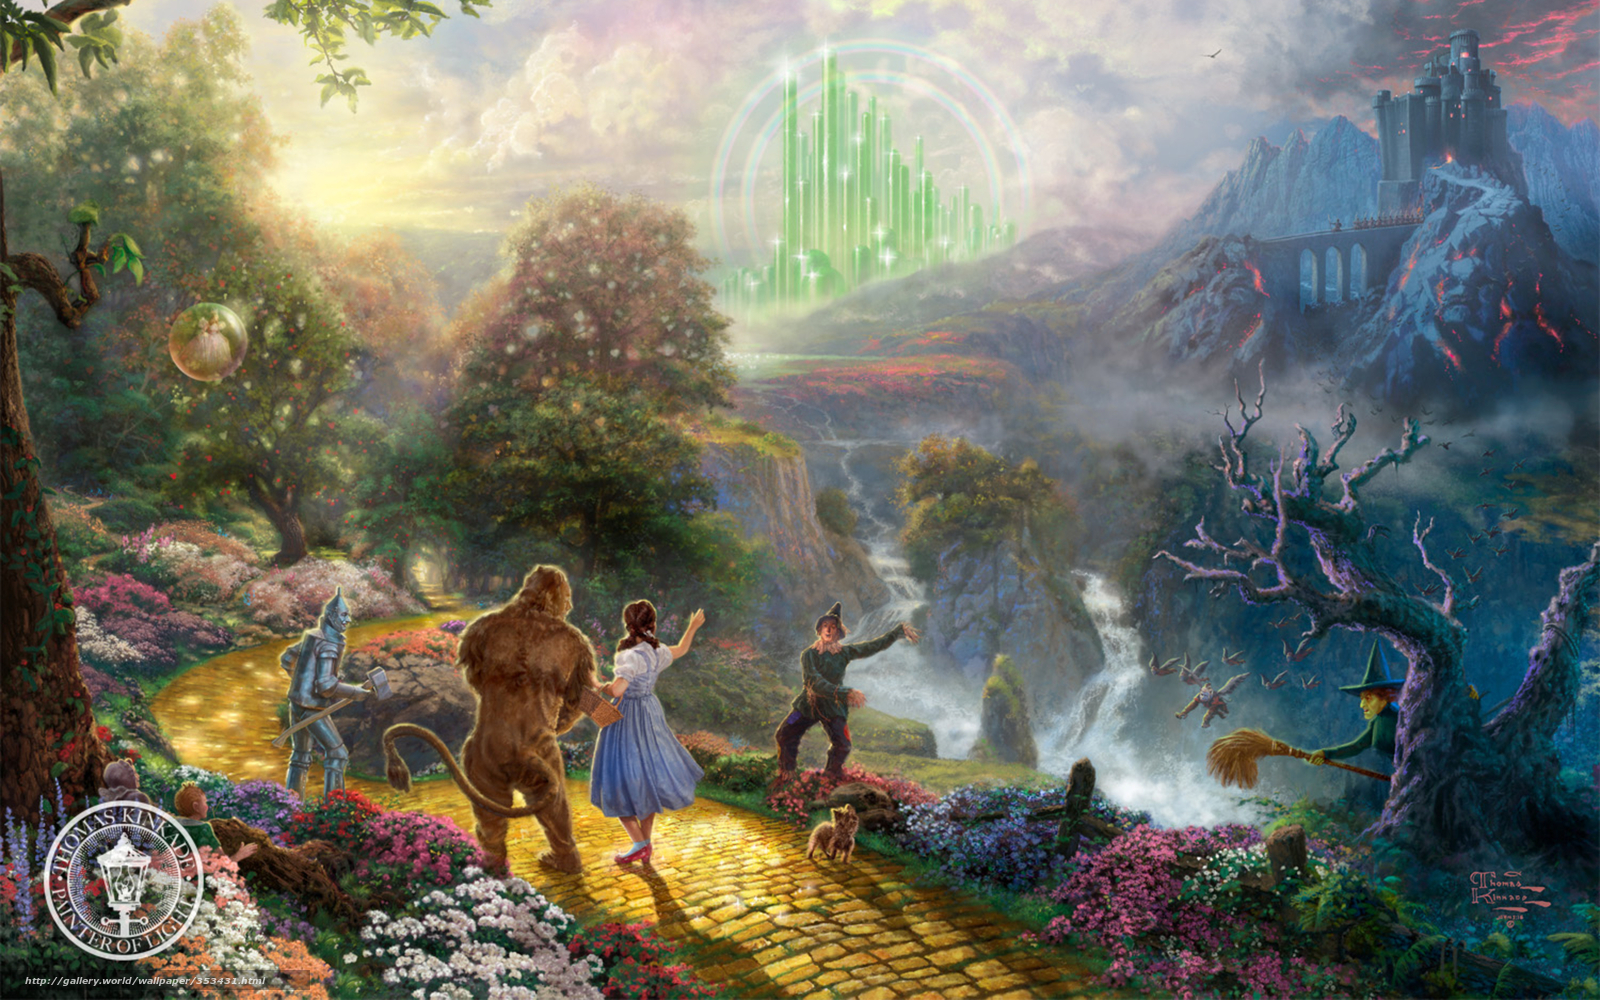 Download wallpaper painting thomas kinkade animated film free